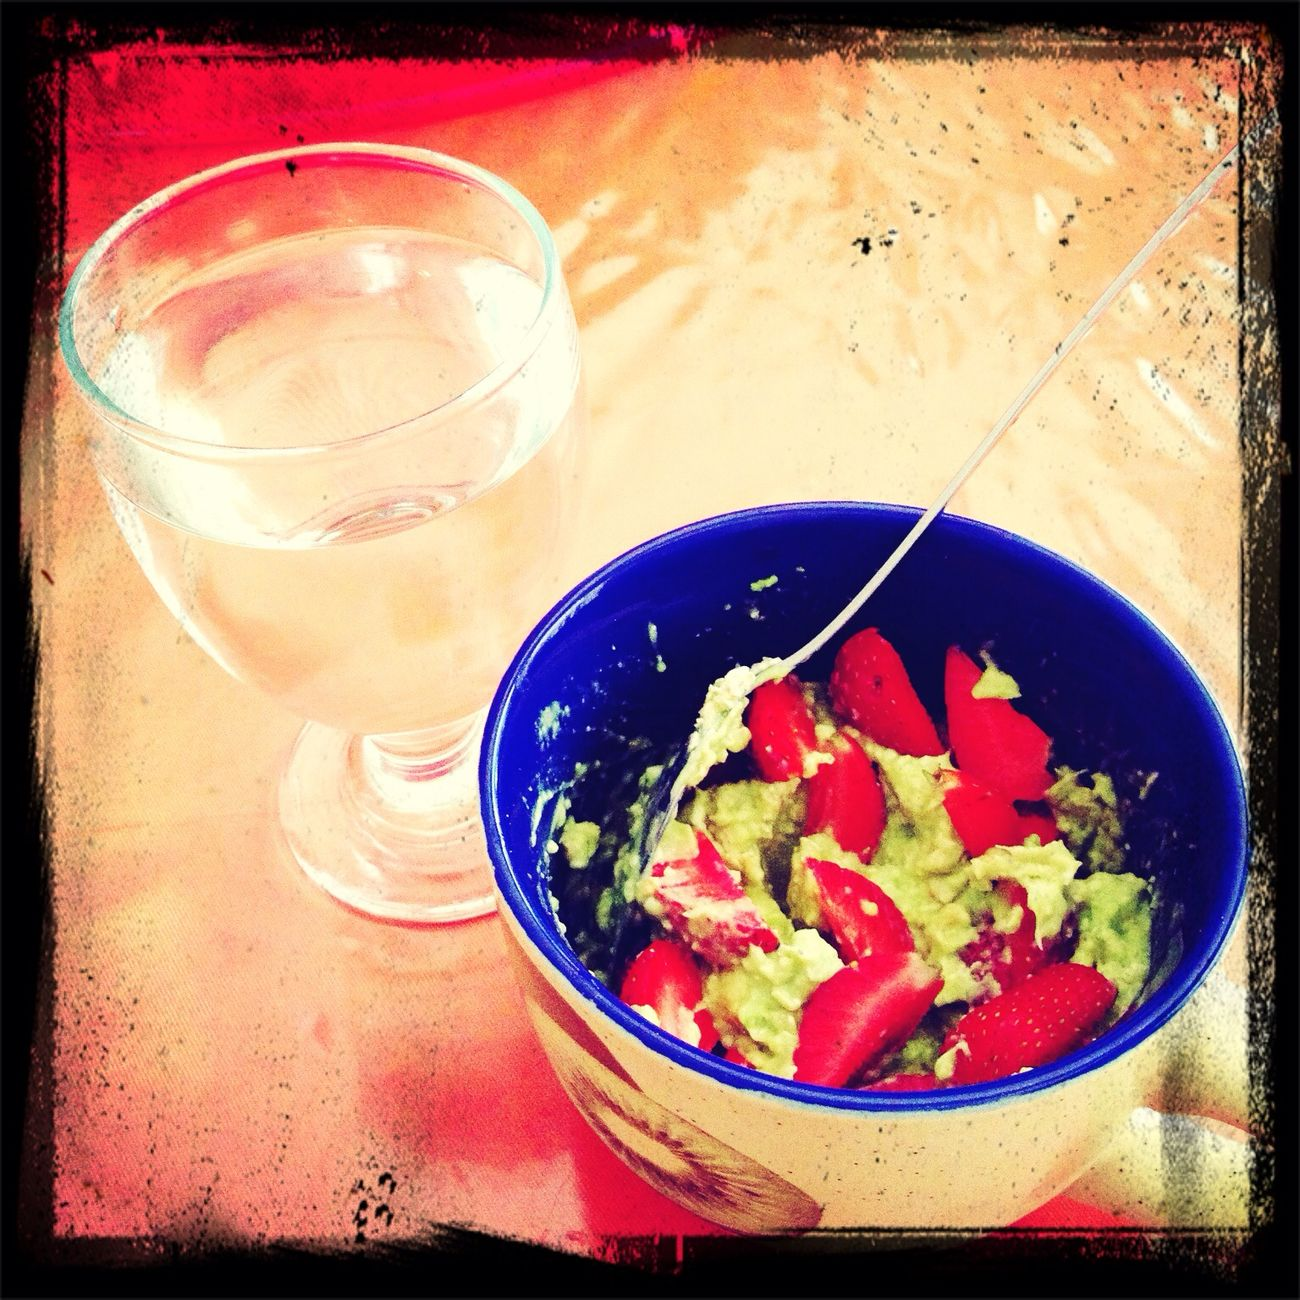 my lunch (alvocado+oatmeal+strawberry)